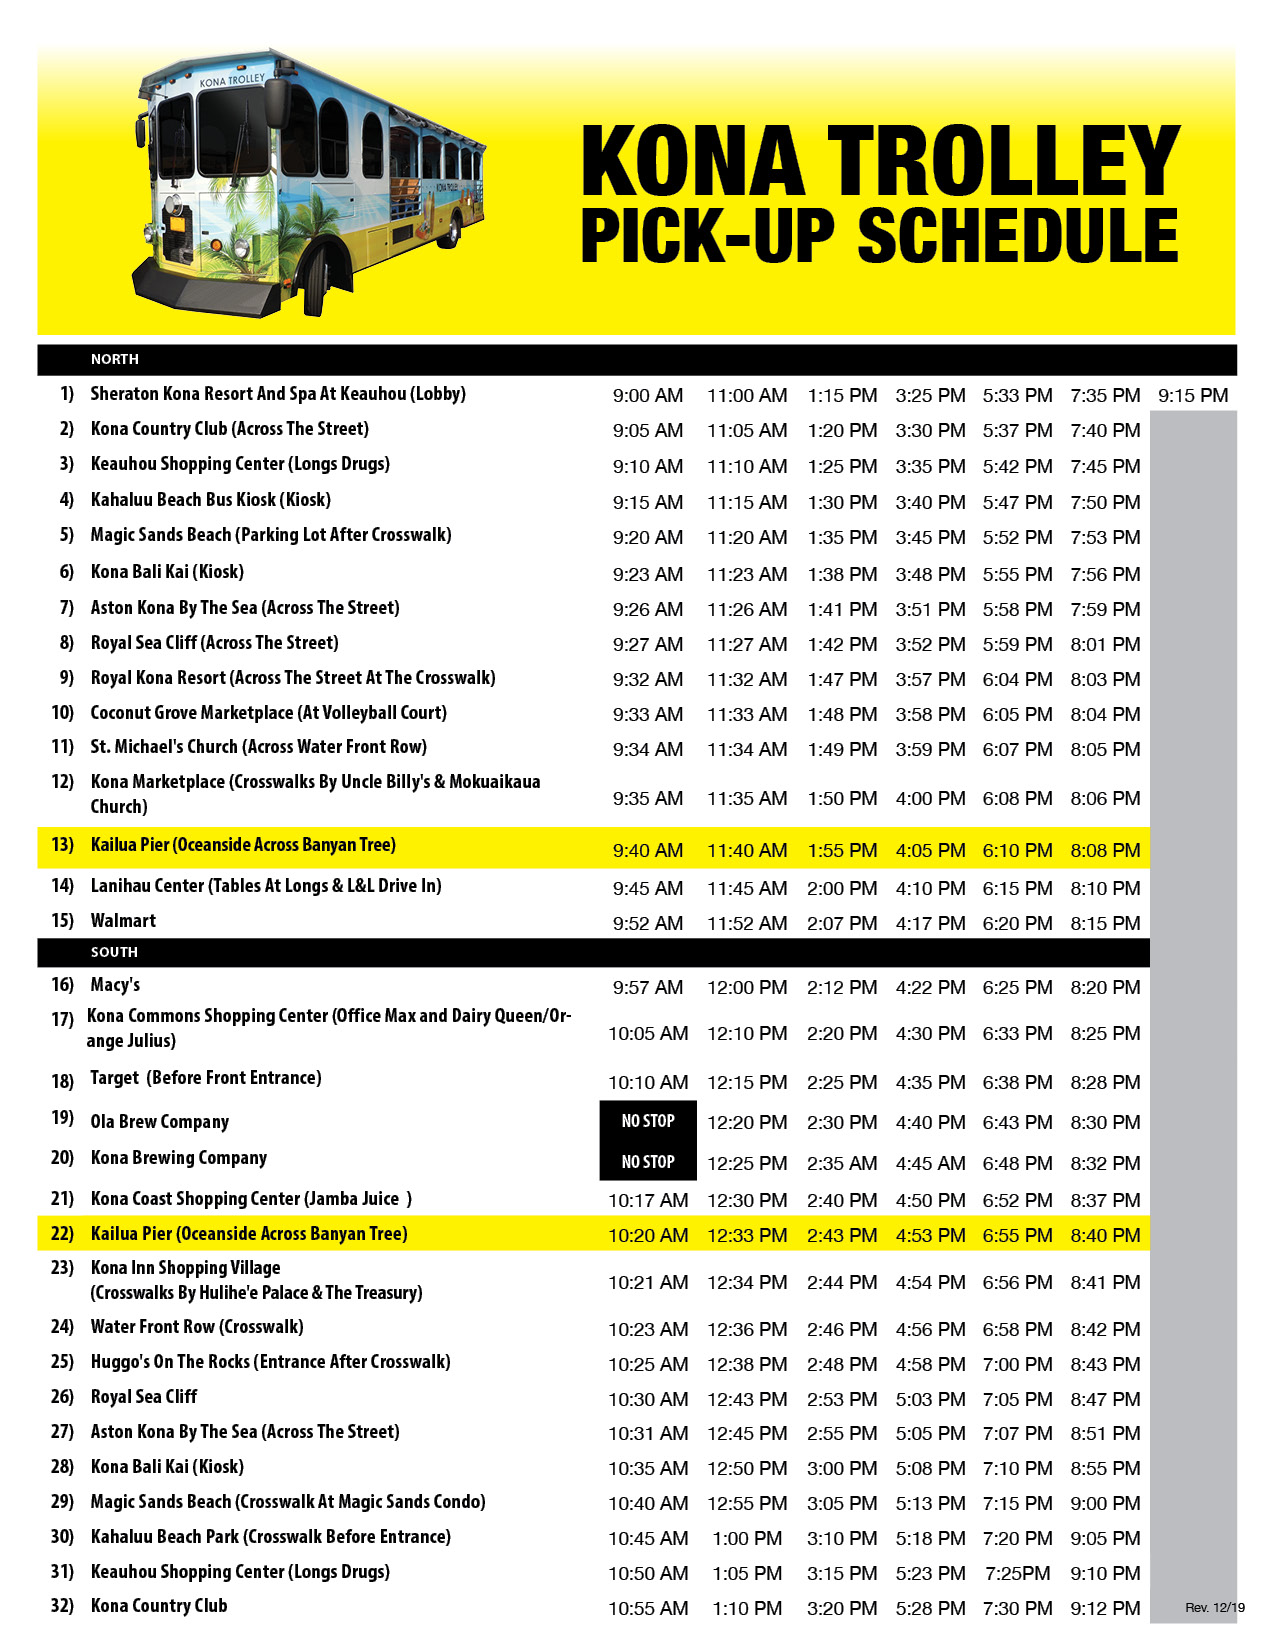 Click here to Download Pick-up Schedule